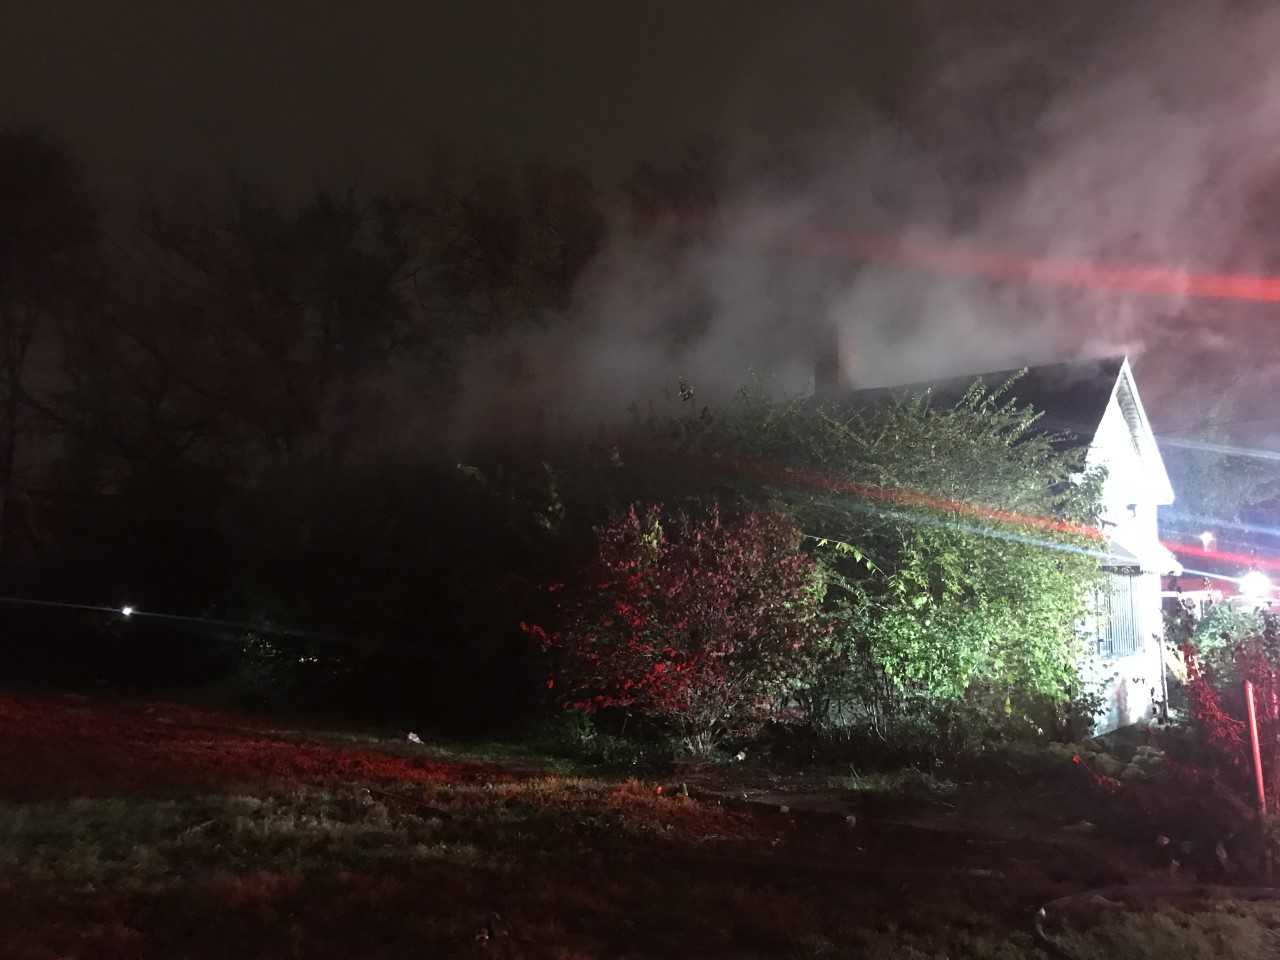 South Nashville fire_1542161265100.jpg.jpg